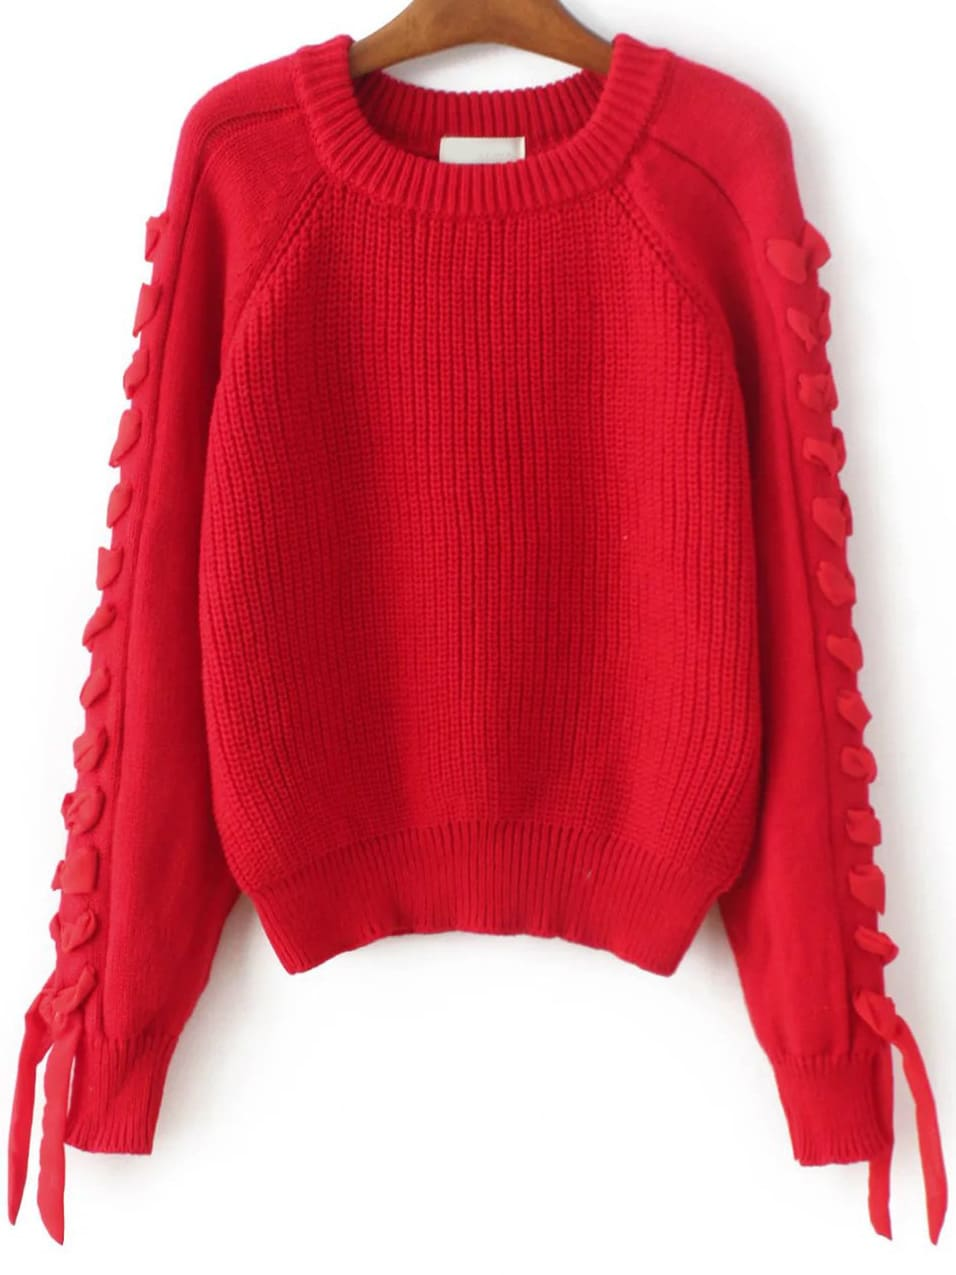 Red Lace Up Detail Raglan Sleeve Sweater -SheIn(Sheinside)